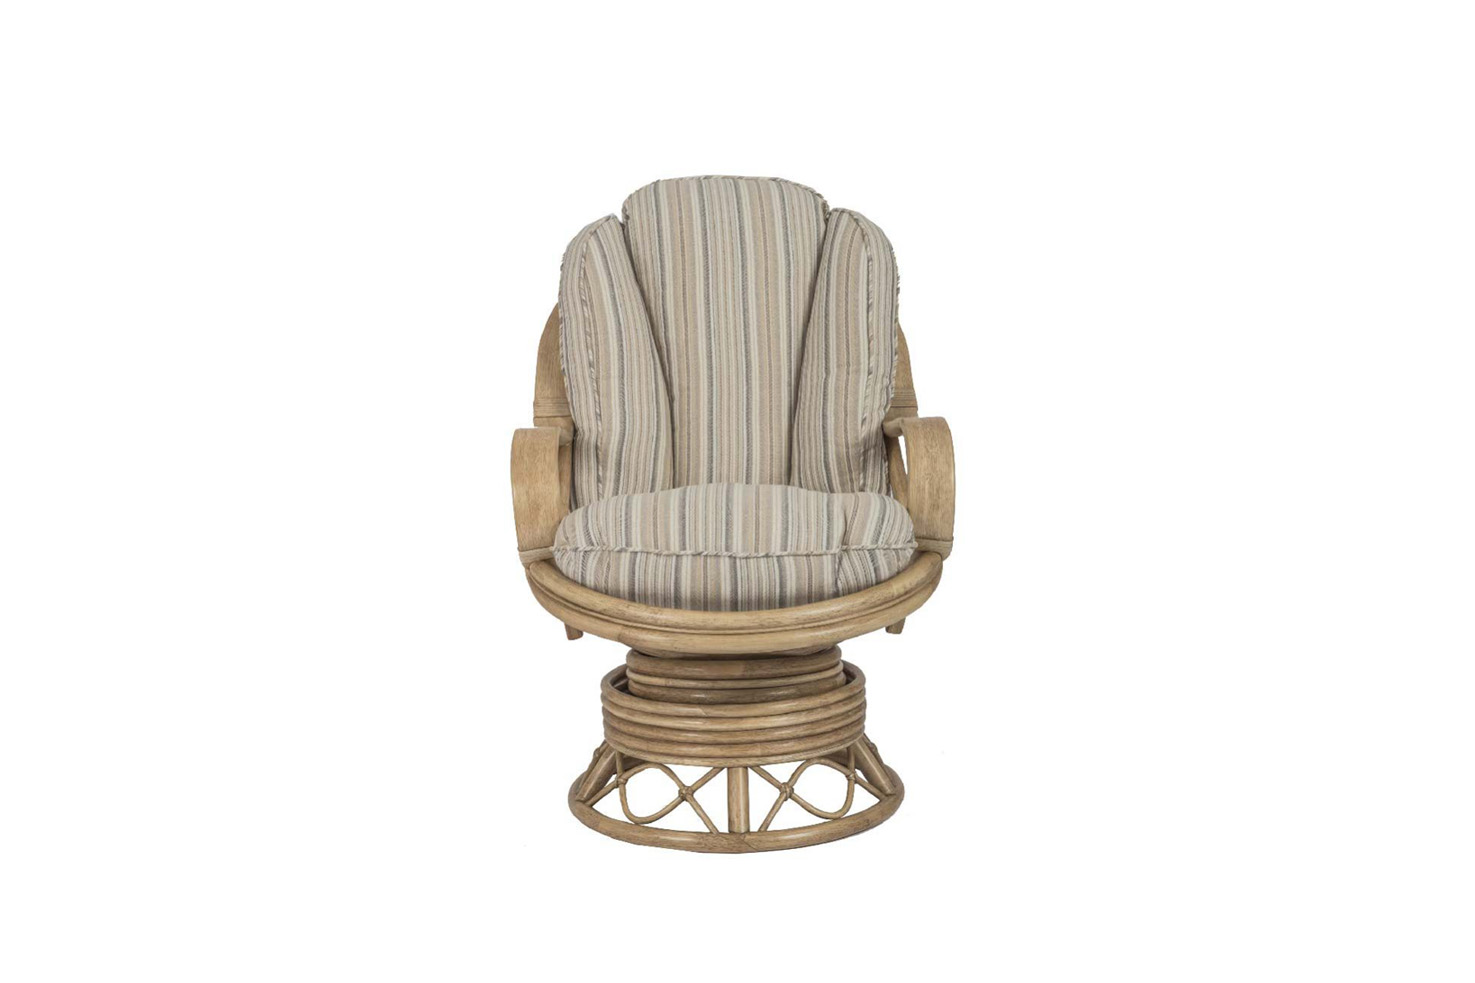 Seasons Wicker Cane Rattan Conservatory Furniture Swivel